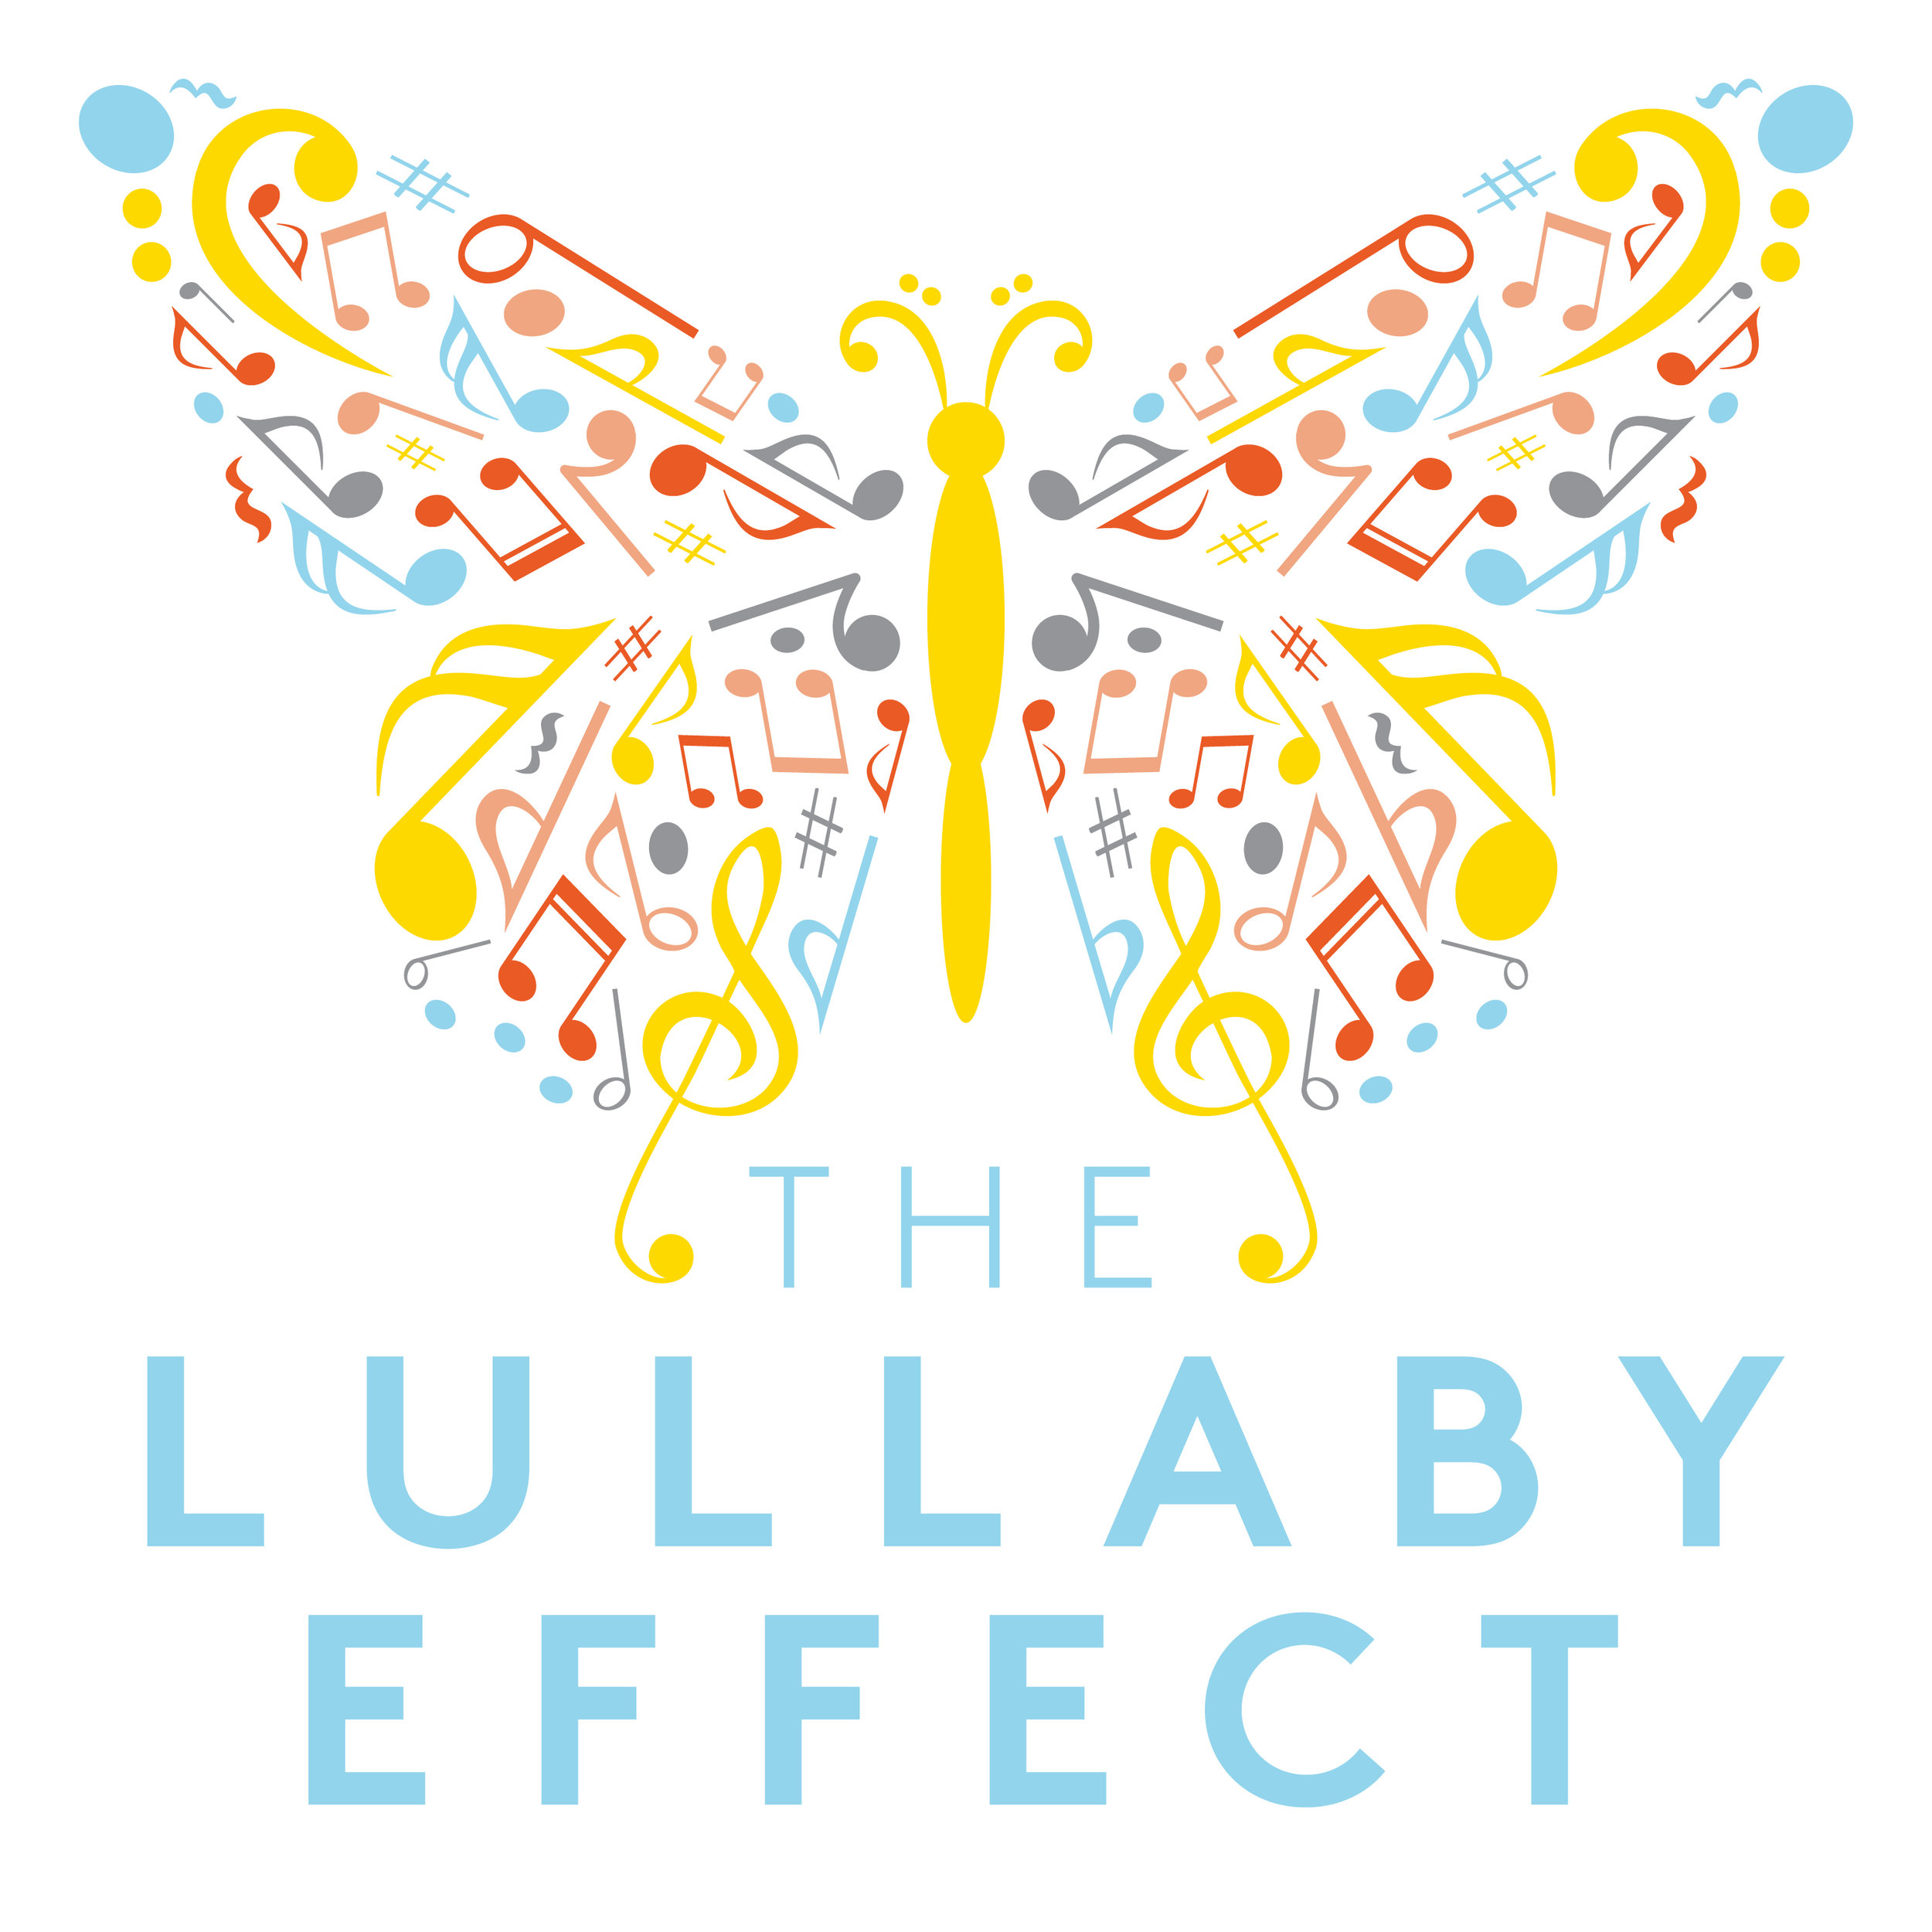 Sign up for the forthcoming book The Lullaby Effect